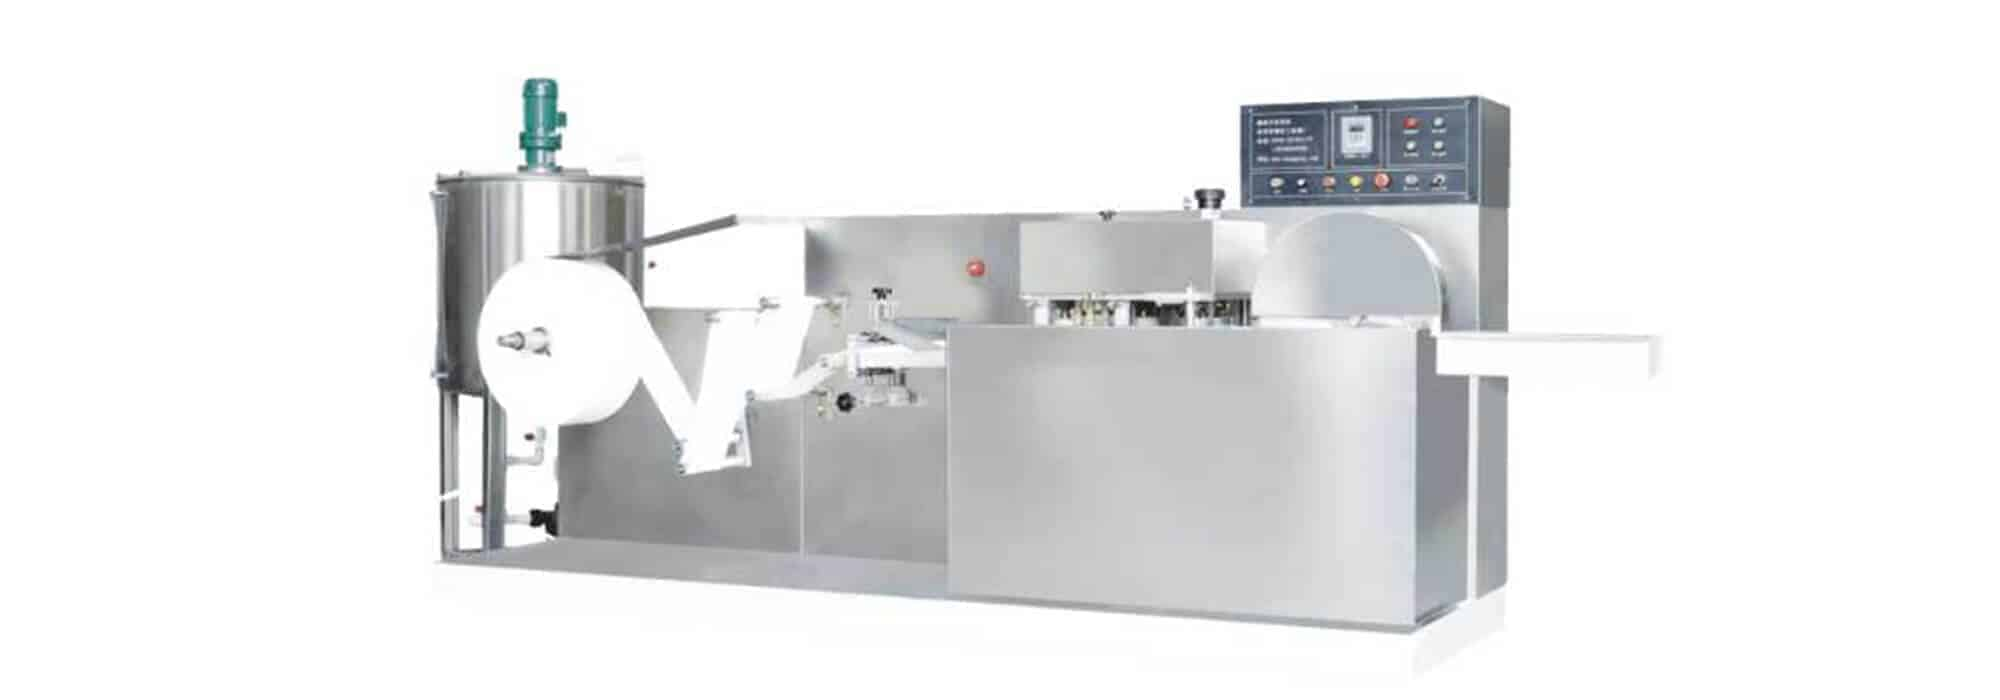 DH 200 wet wipes converting machine  - DH-200 wet wipes converting machine (5-30pcs/pack)